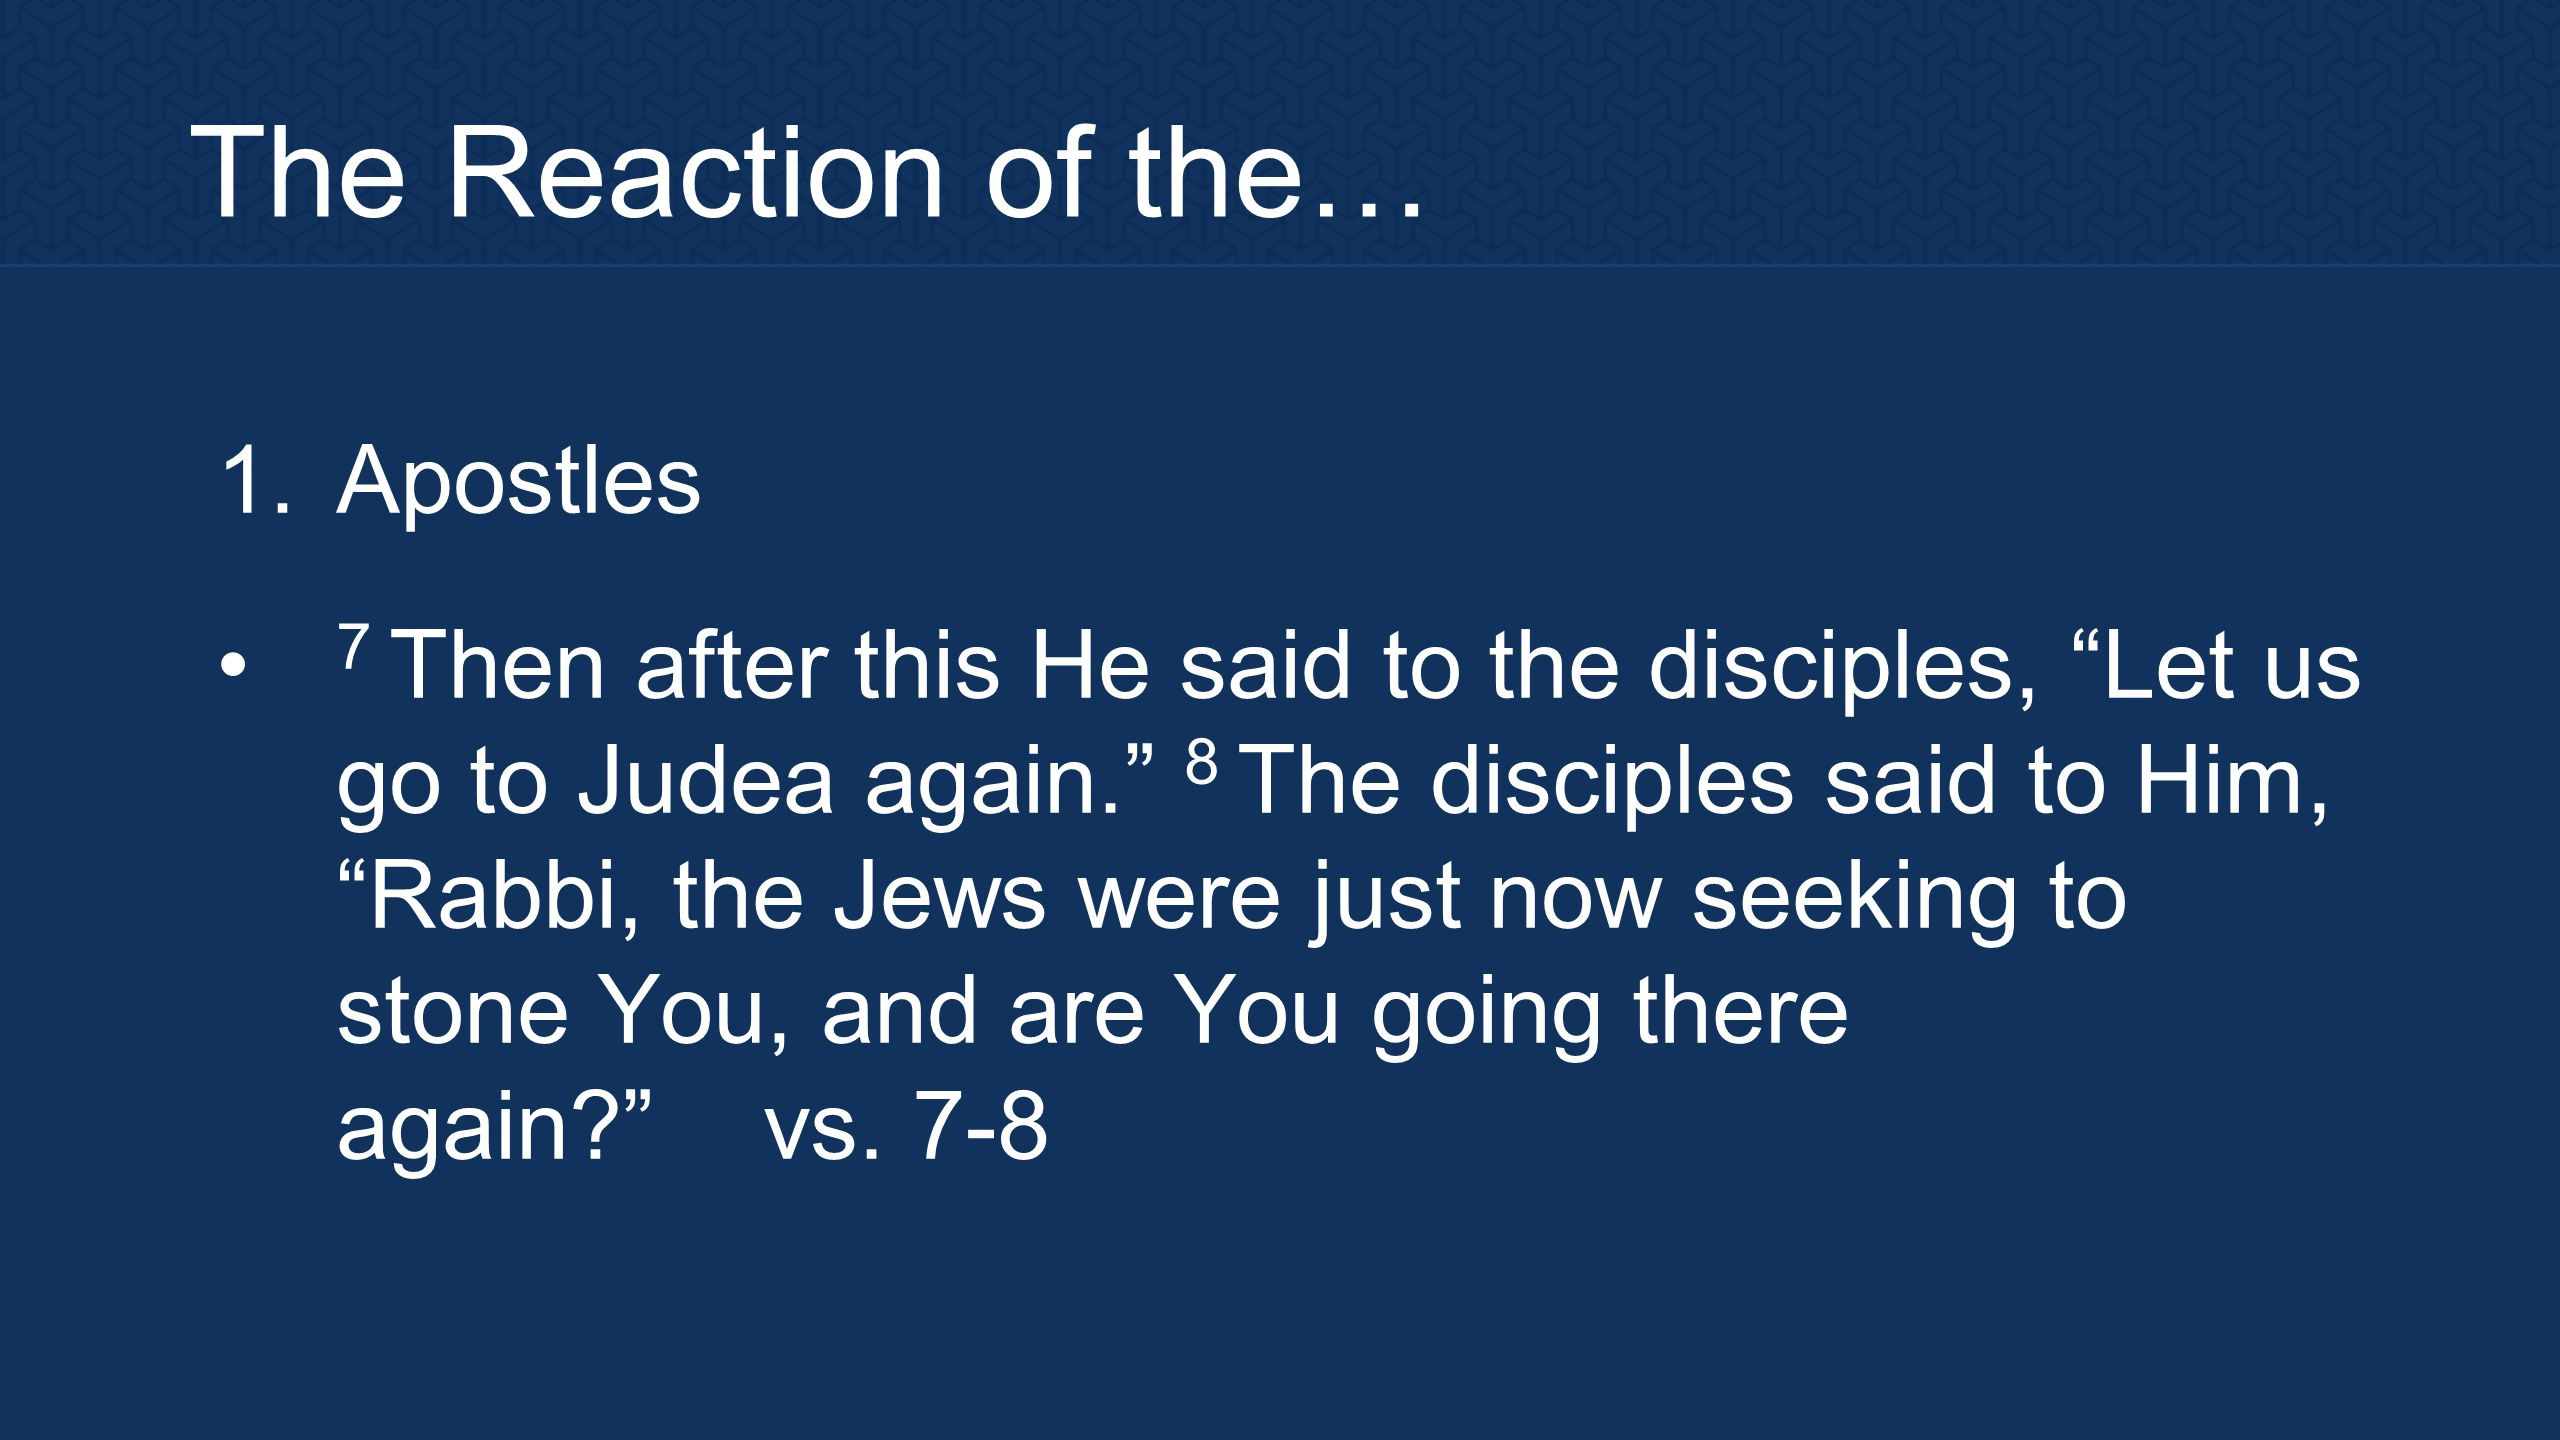 The Conspiracy 55 Now the Passover of the Jews was near, and many went up to Jerusalem out of the country before the Passover to purify themselves.